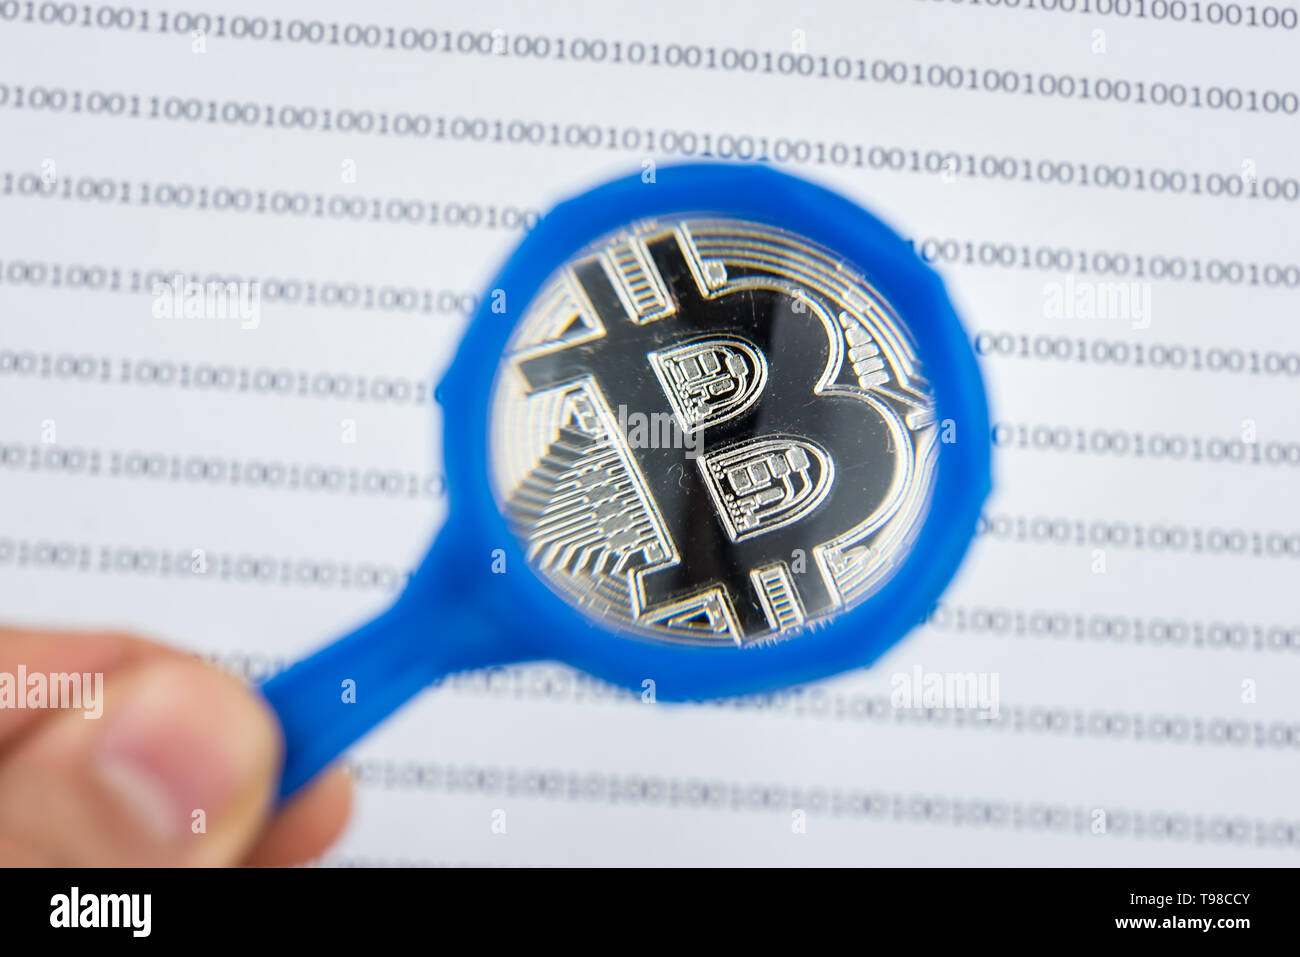 Man hand holds magnifying glass over bitcoin, cryptocurrency physical coin on paper with binary system of zeros and ones.Virtual cryptocurrency concep Stock Photo